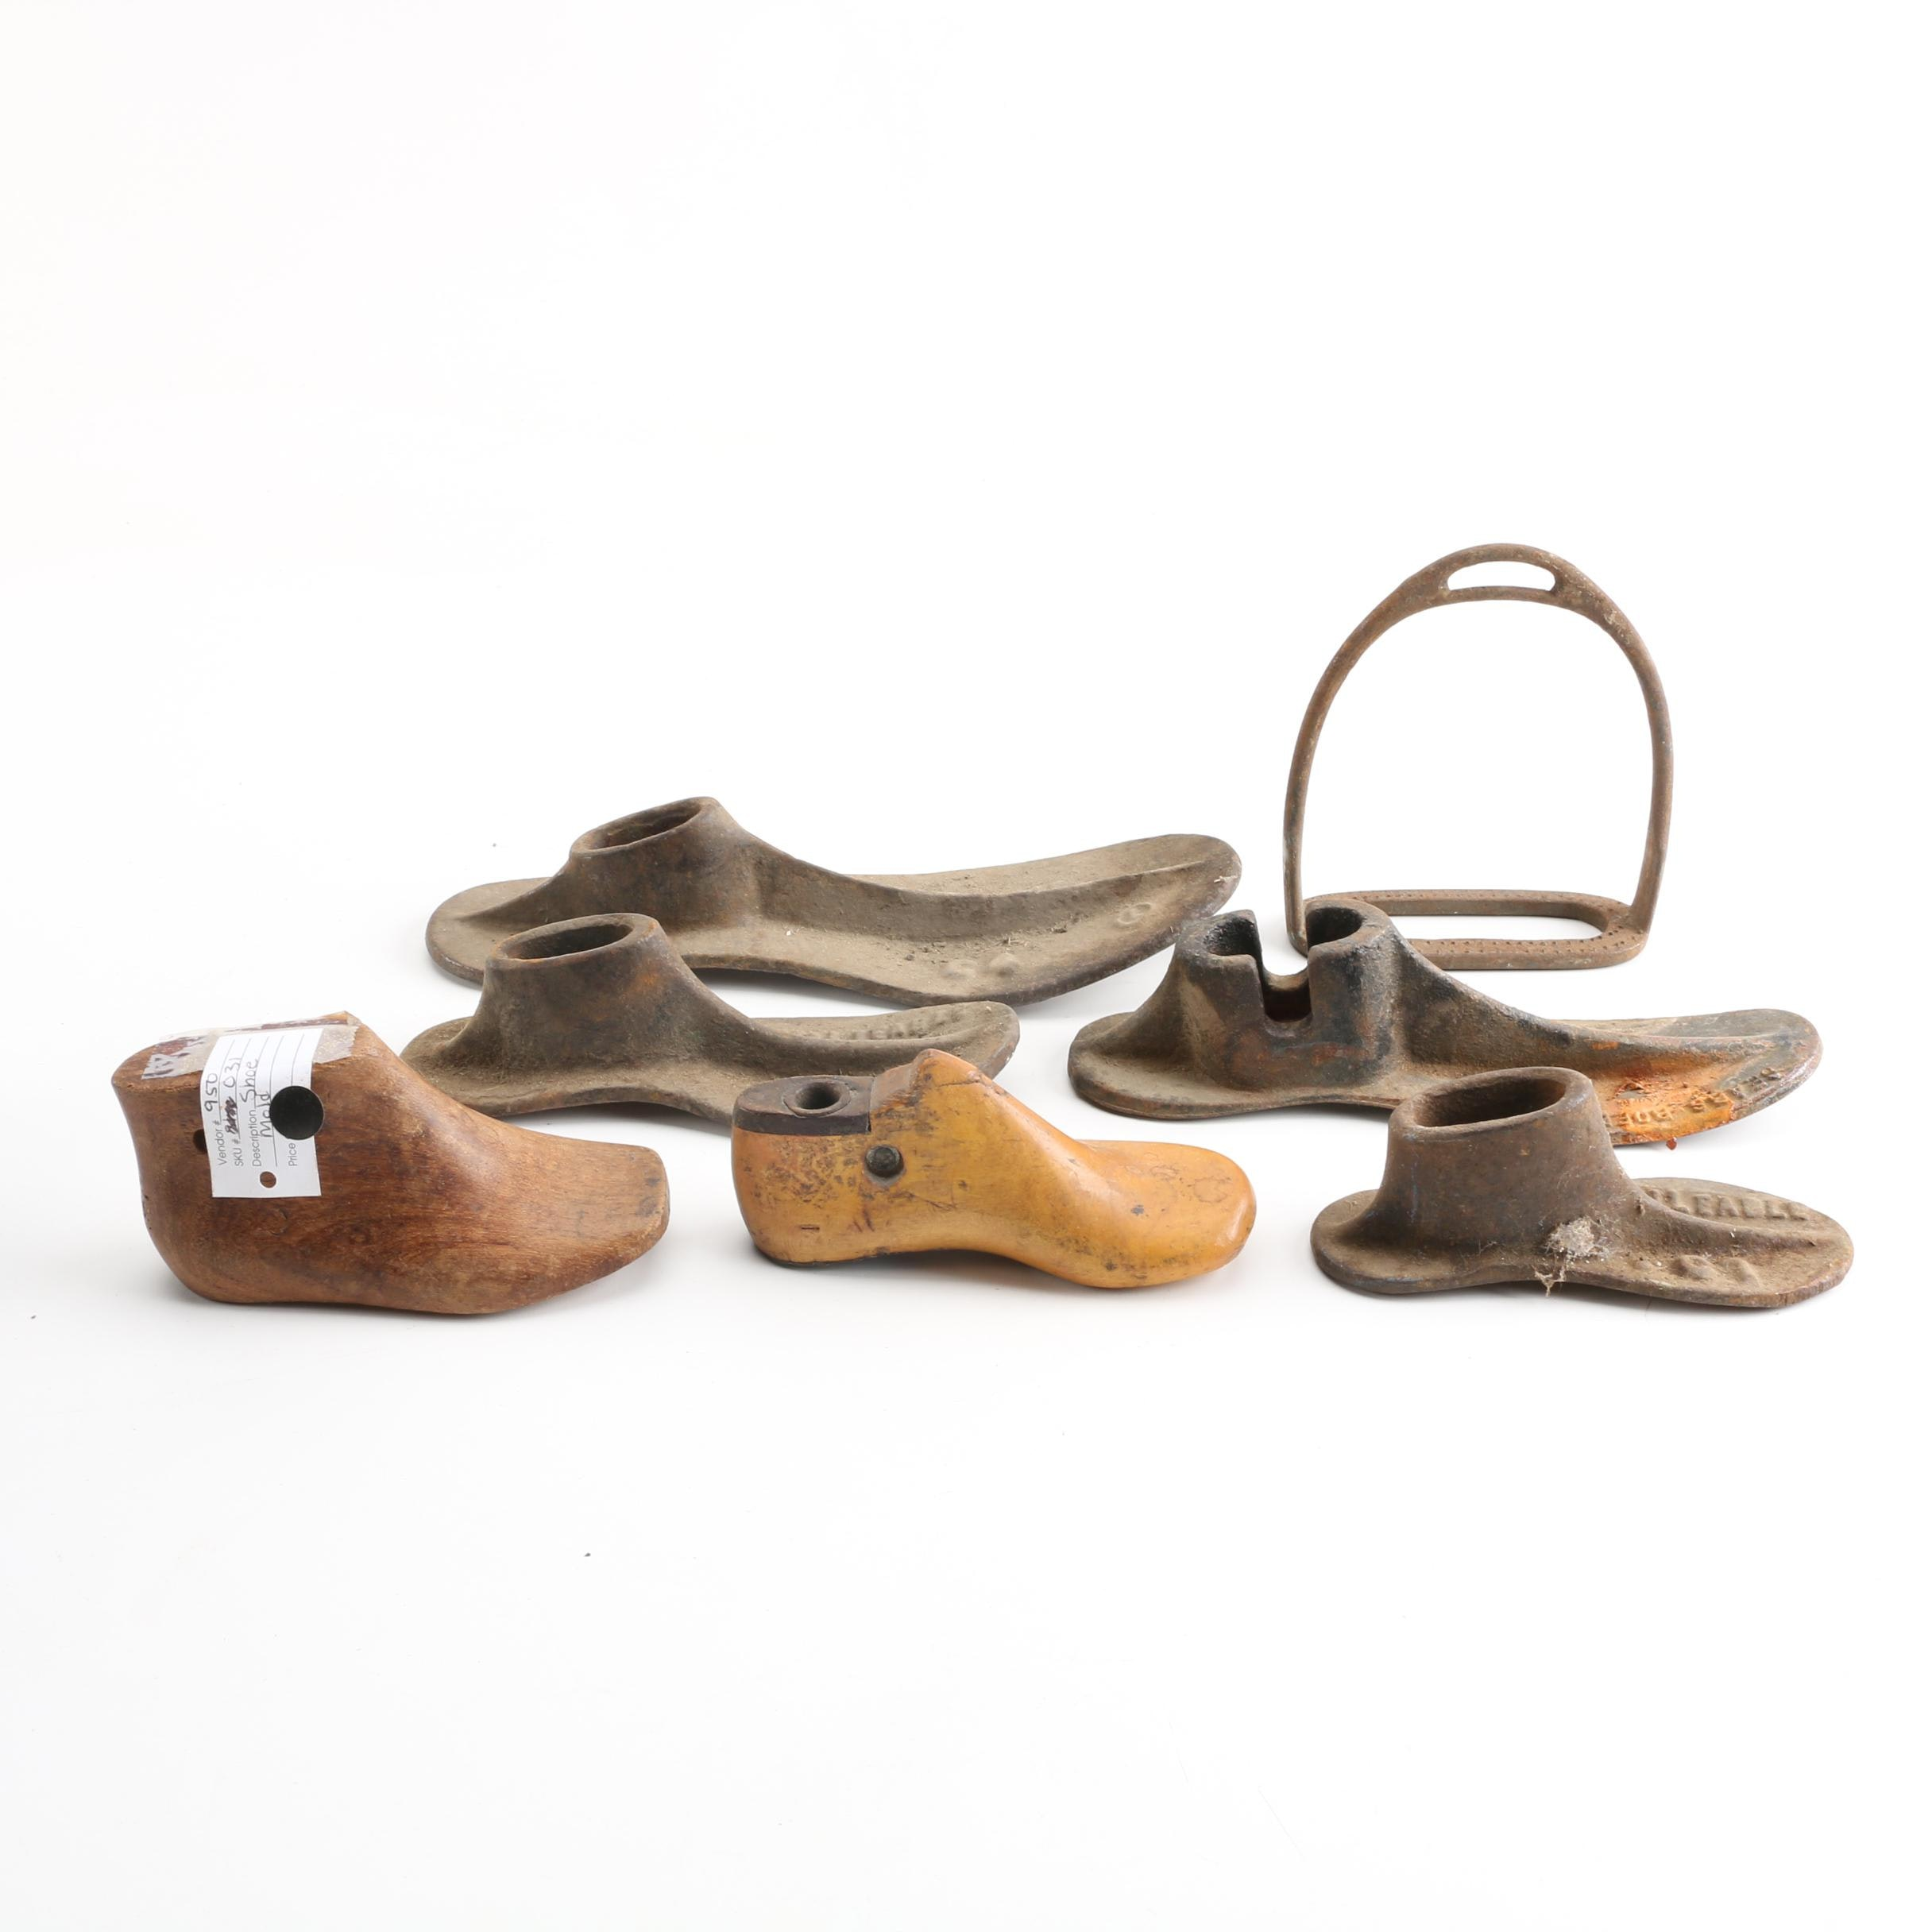 Antique Shoe Forms Including Sears Roebuck